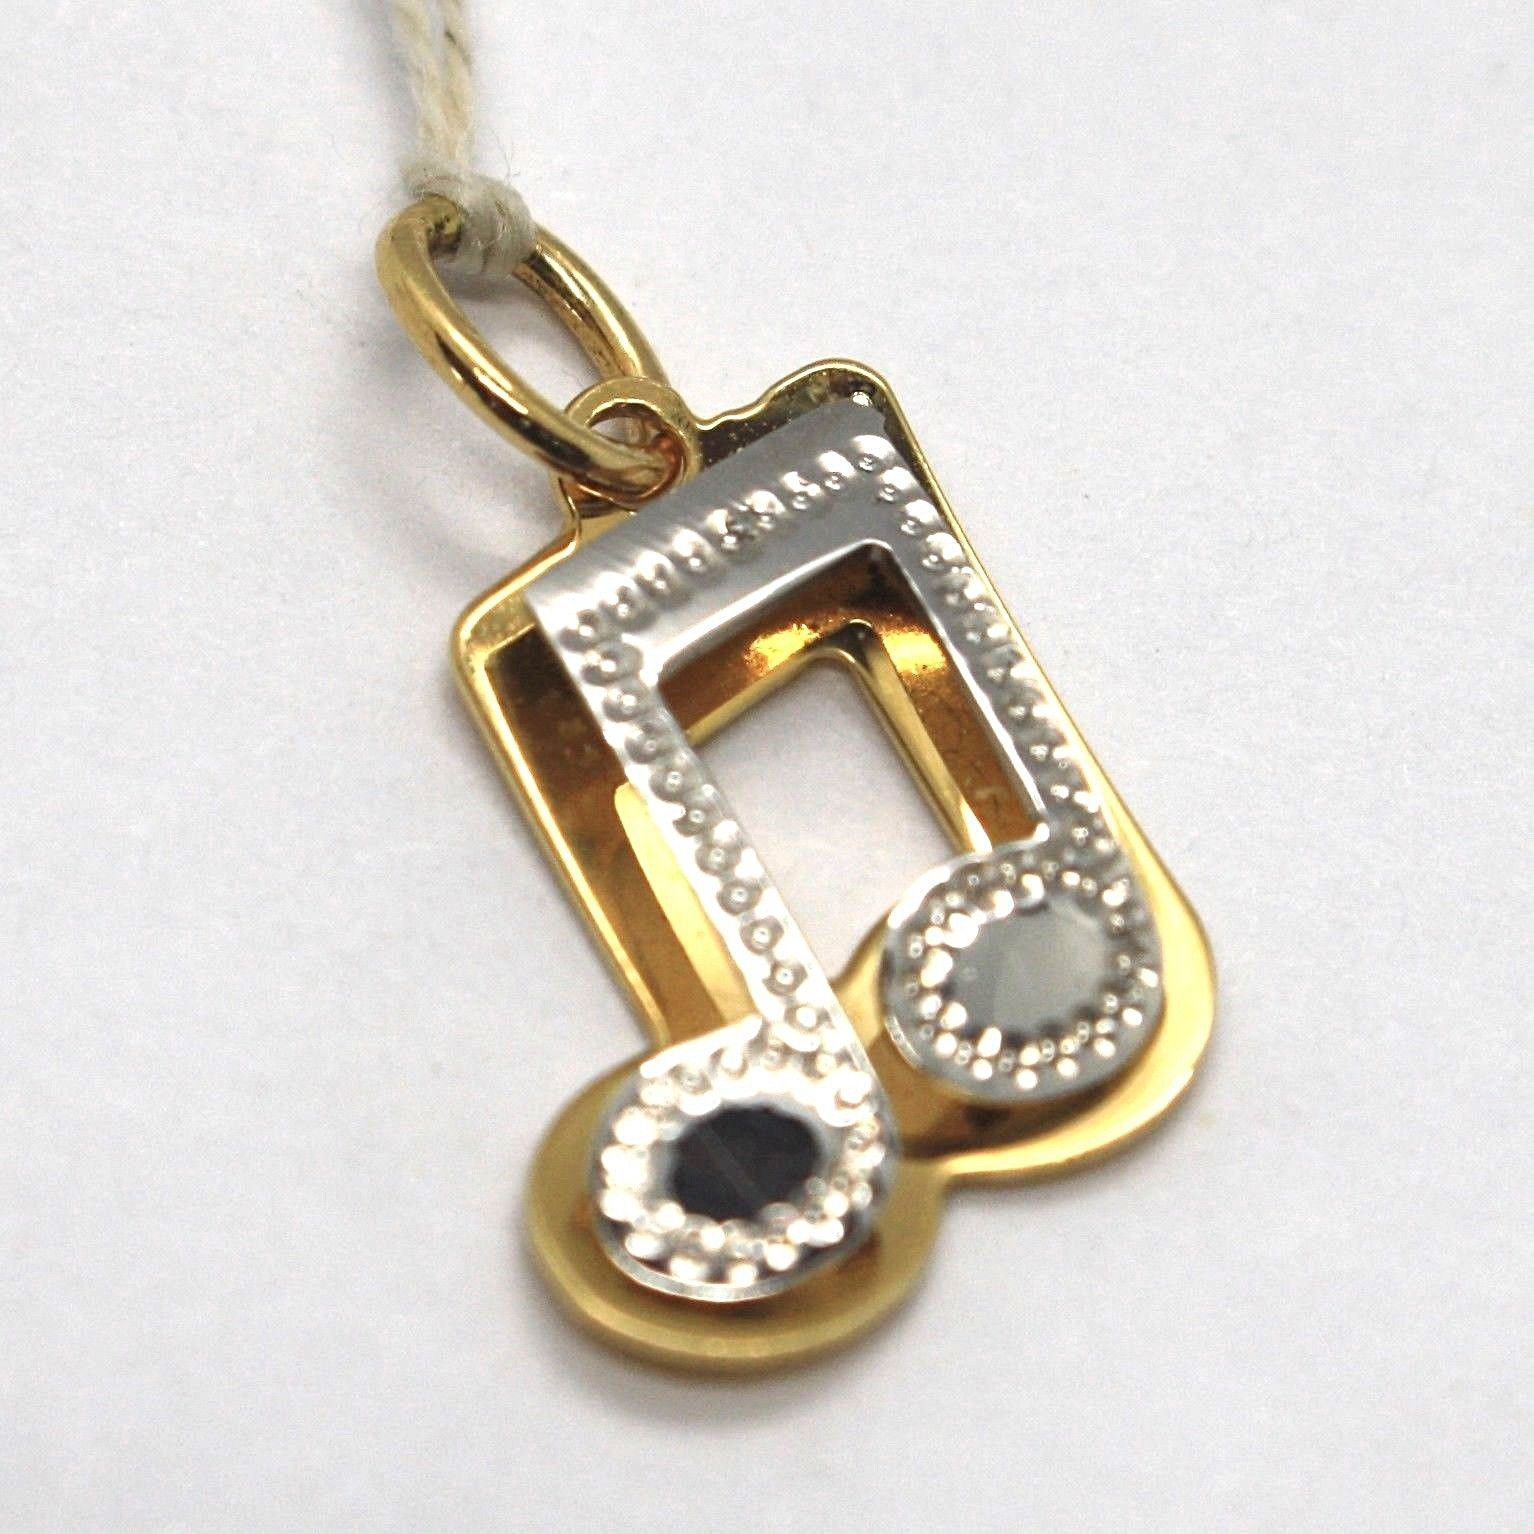 YELLOW GOLD PENDANT WHITE 750 18K, MUSICAL NOTE, MUSIC, MADE IN ITALY